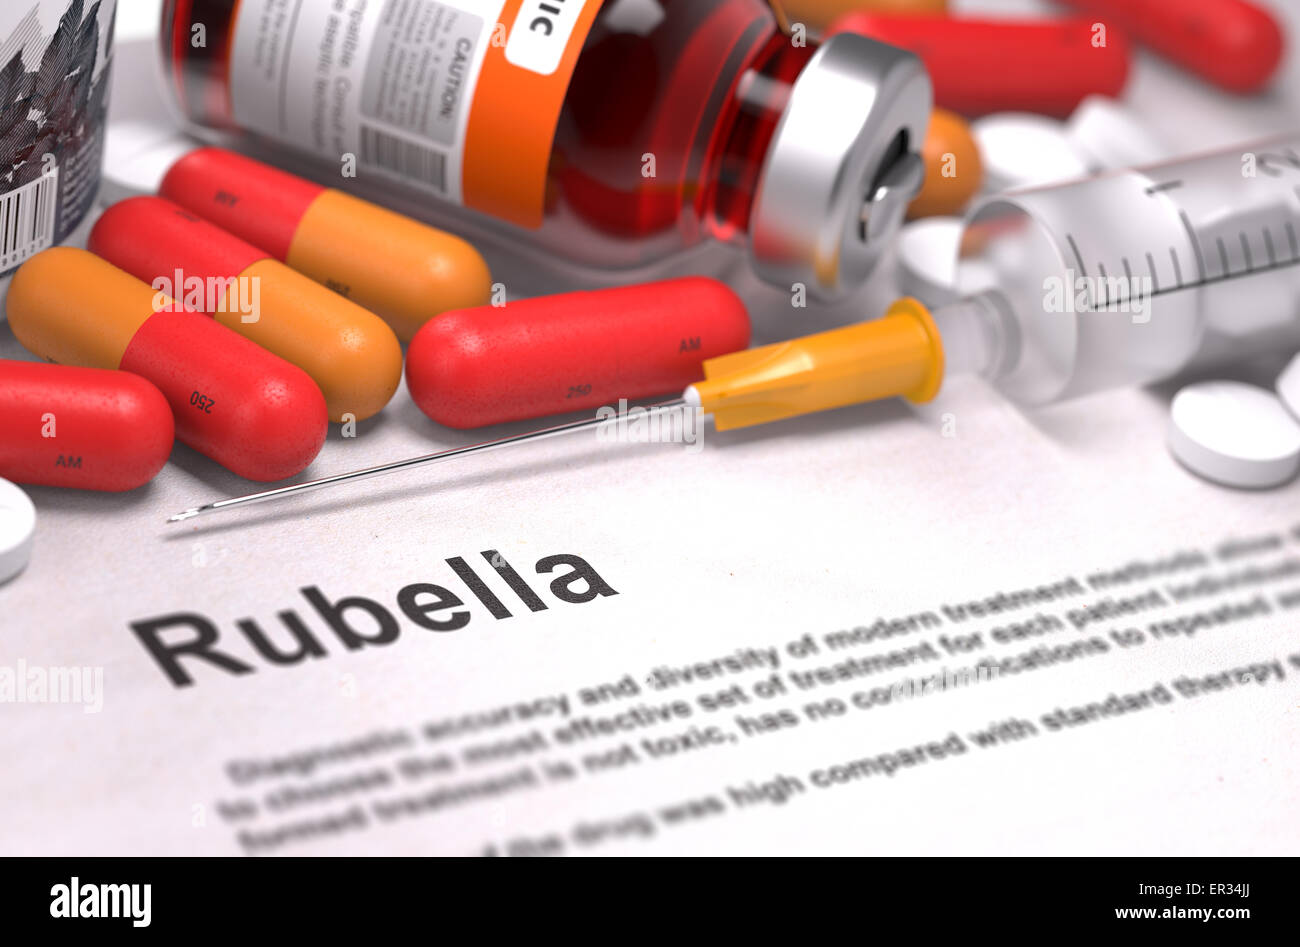 Diagnosis - Rubella. Medical Concept. Stock Photo